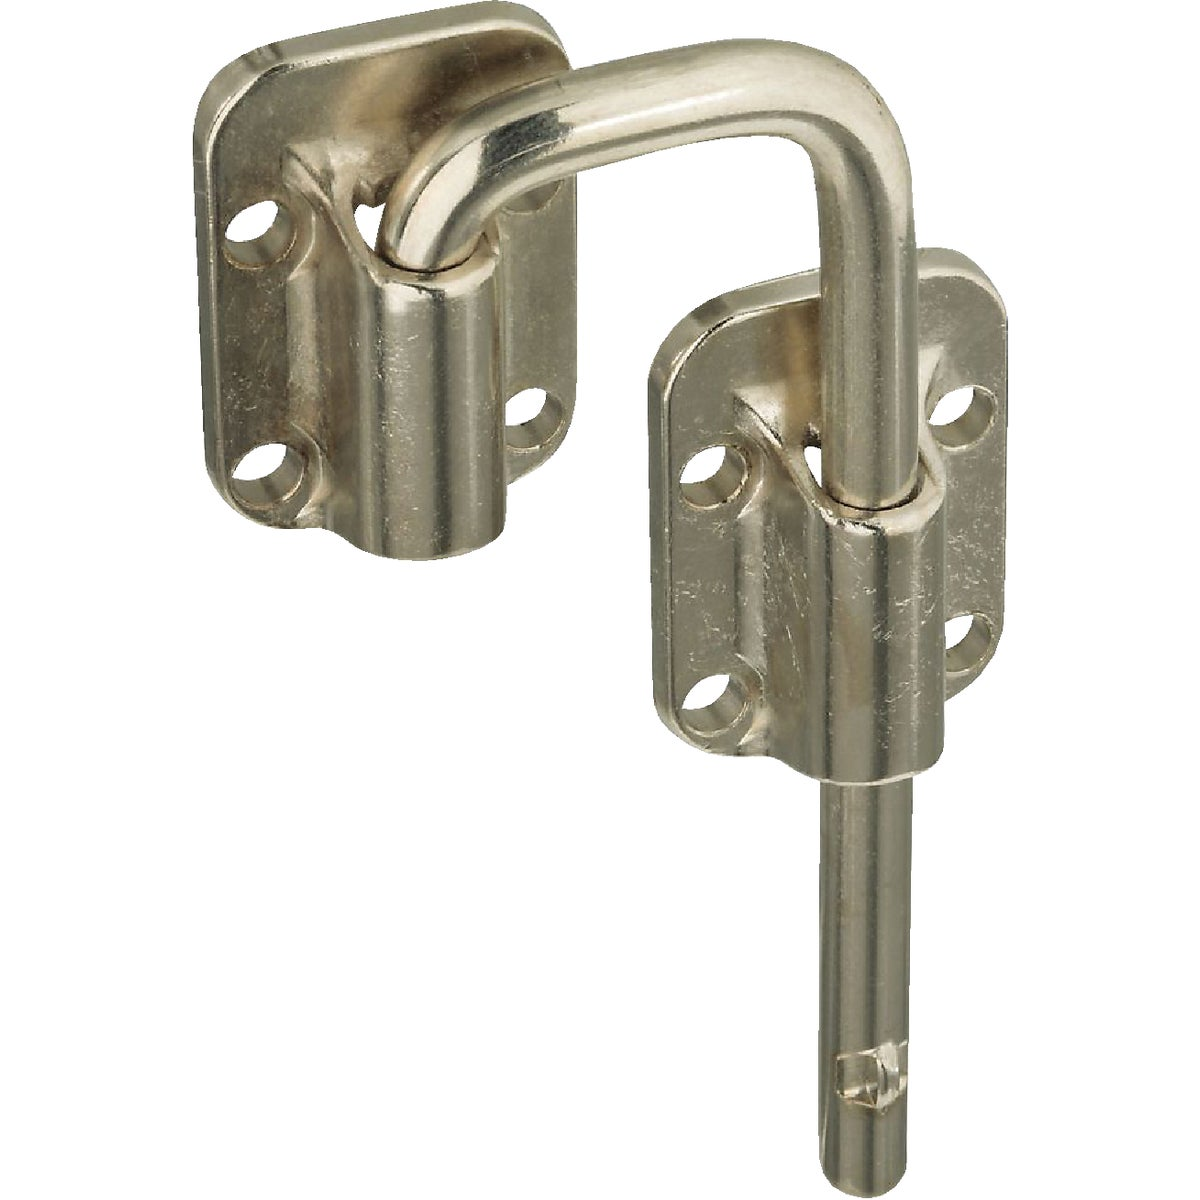 "1-1/2"" NICKEL DOOR LATCH"